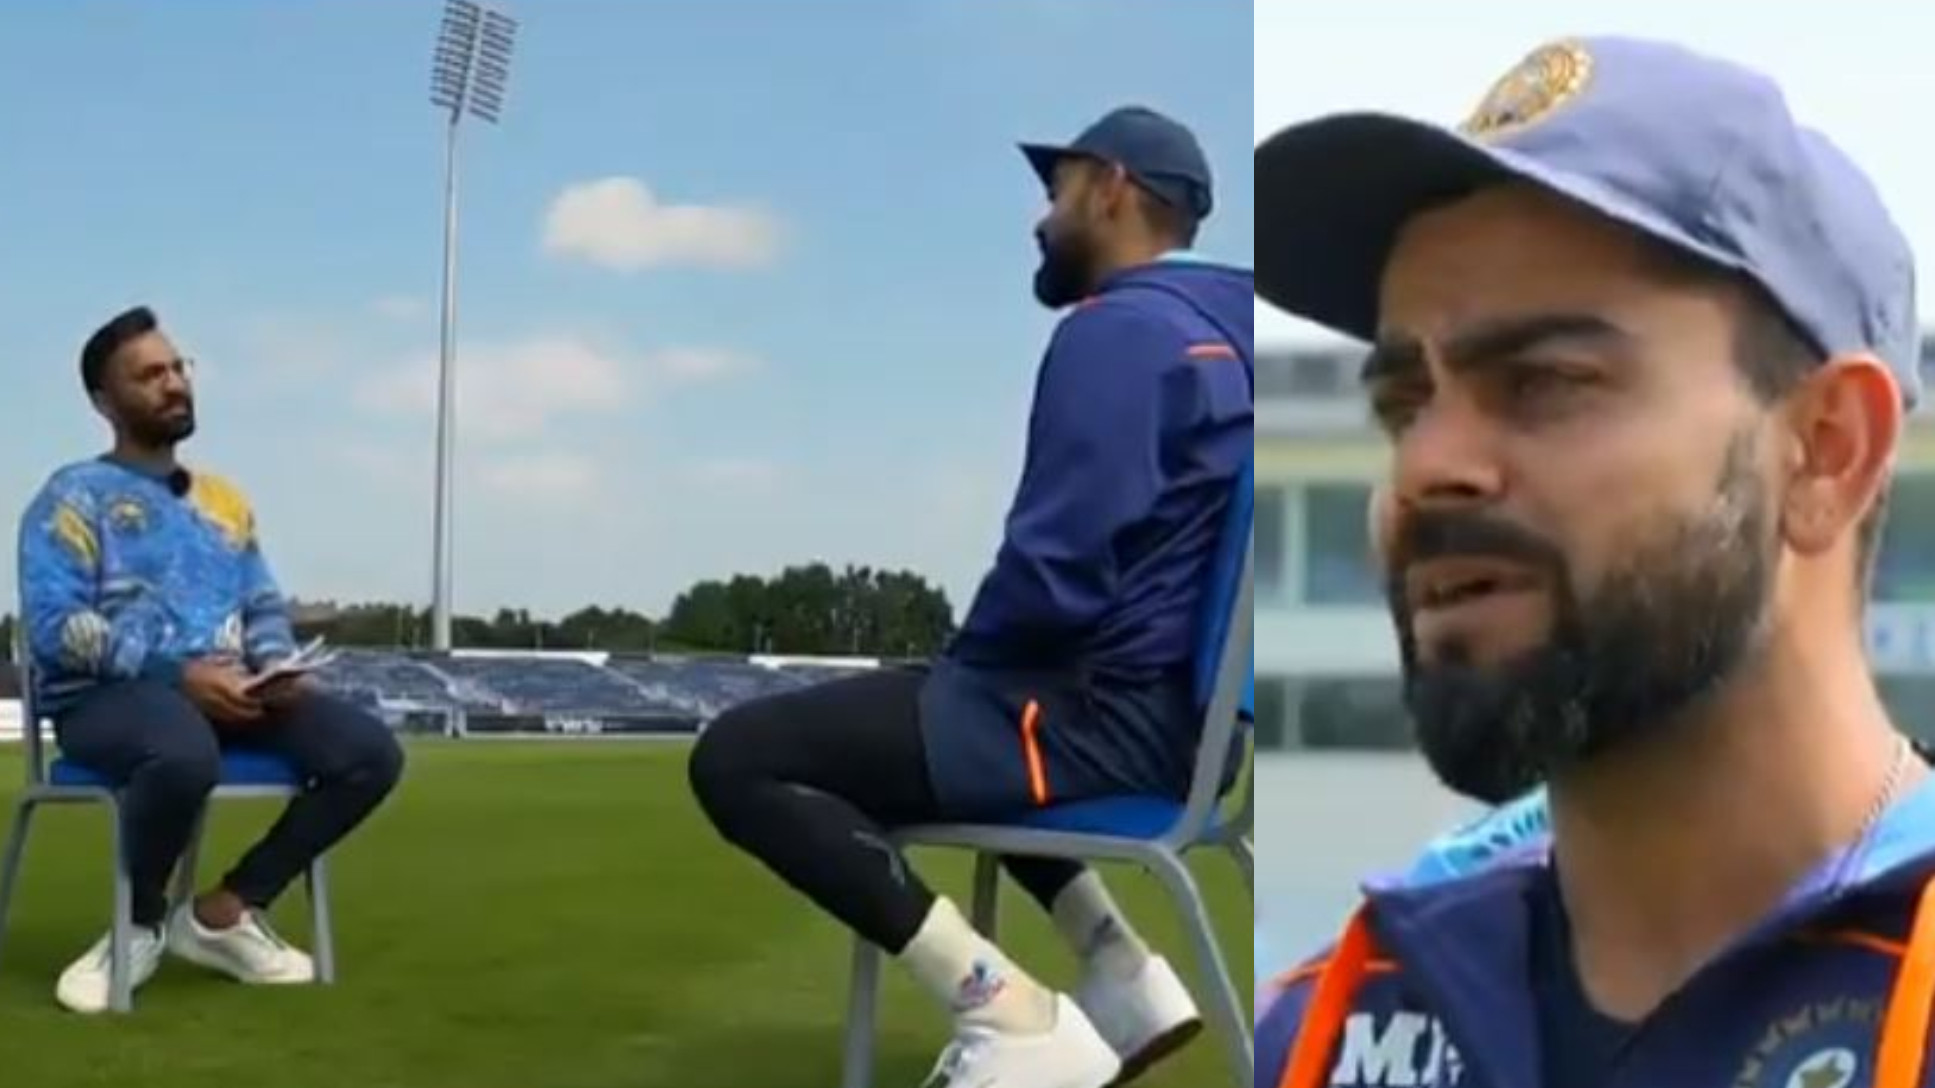 """ENG v IND 2021: Virat Kohli says, """"I want us to go for the win and not surrender; for us, it ispursuit for excellence"""""""